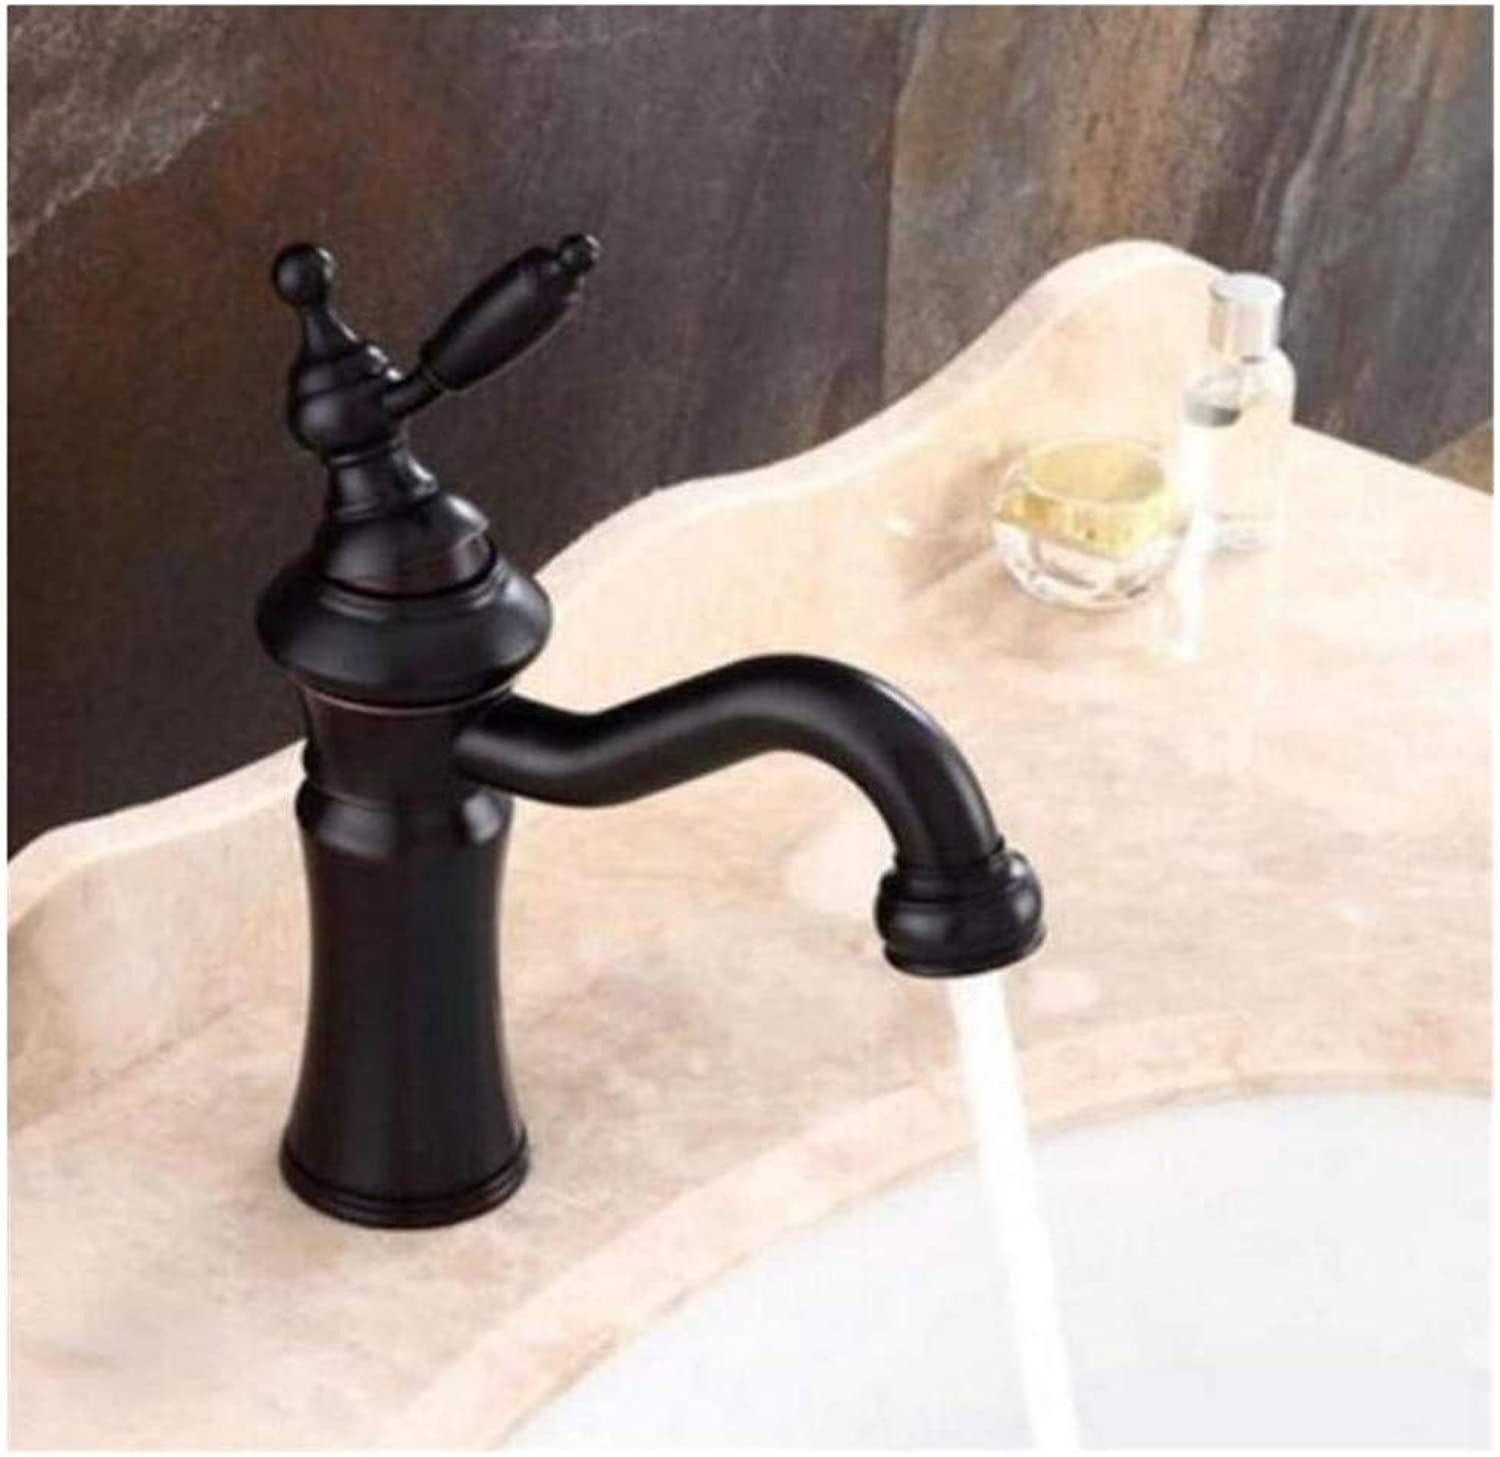 Lever Bathroom Sink Faucet Basin Faucet Tall Water Tap